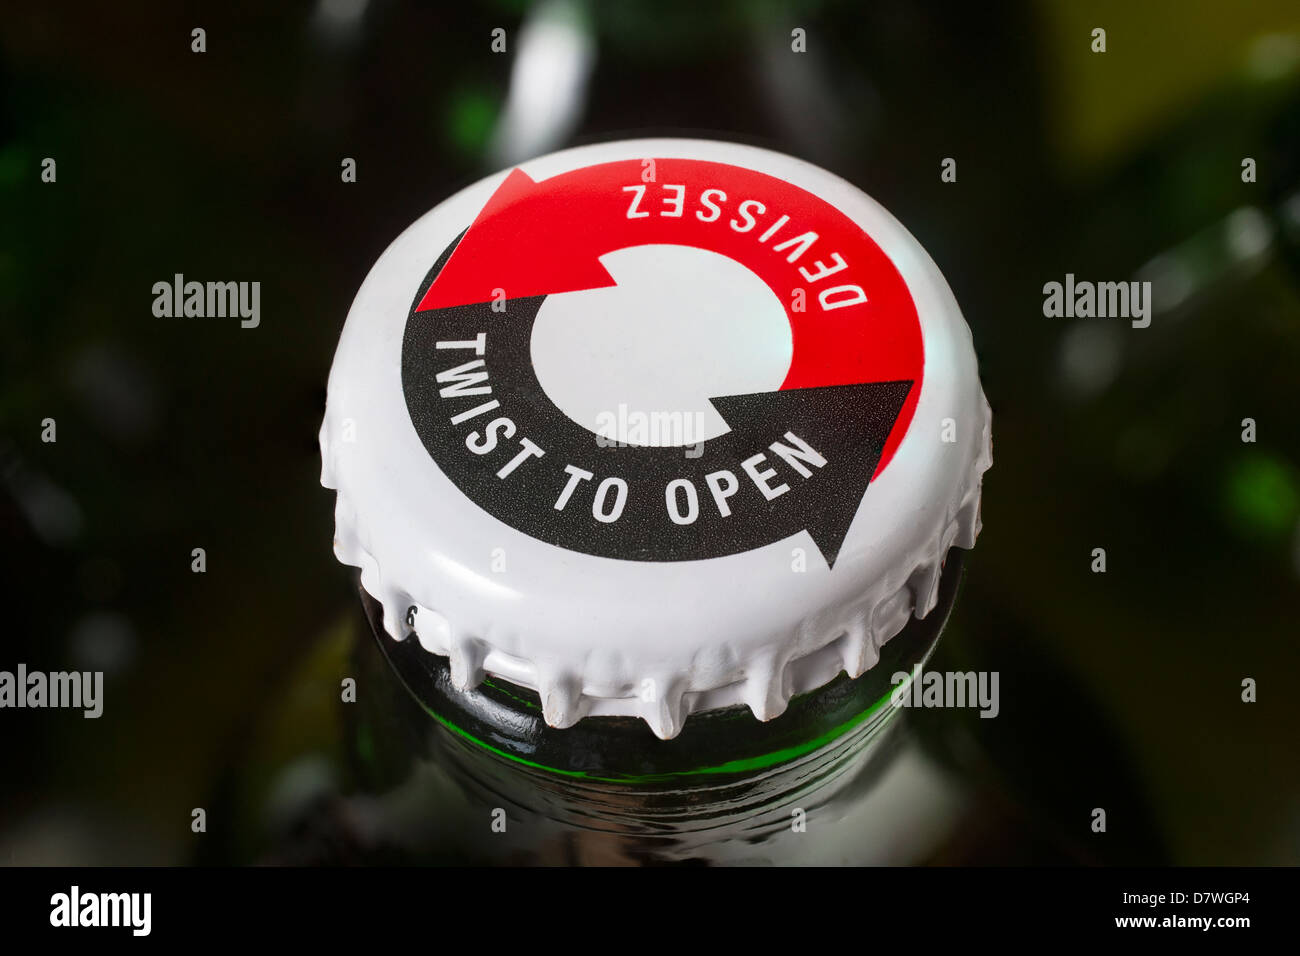 A twist off cap on a beer bottle - Stock Image